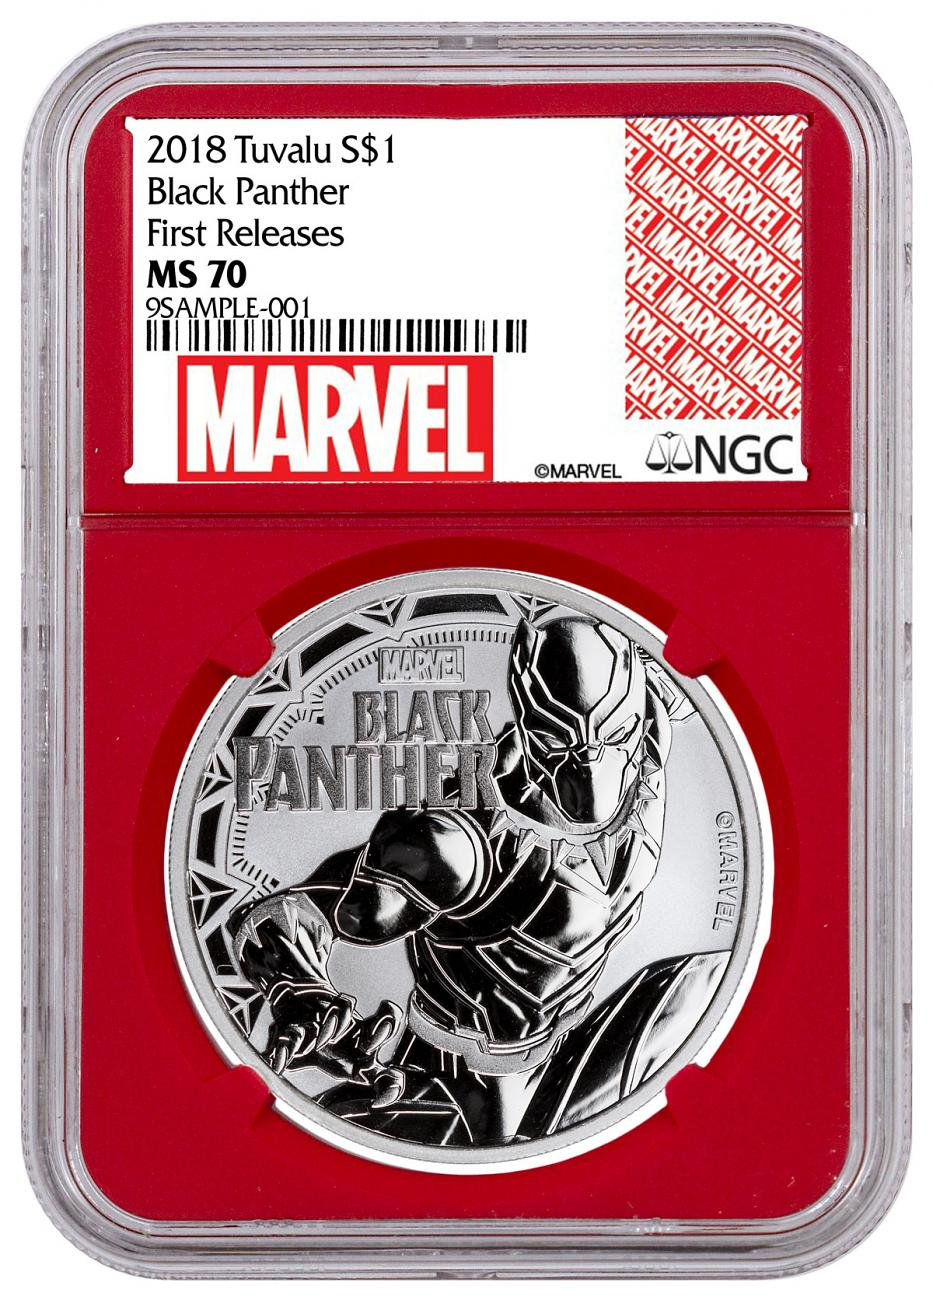 2018 Tuvalu Black Panther 1 oz Silver Marvel Series $1 Coin NGC MS70 FR Red Core Holder Exclusive Marvel Label